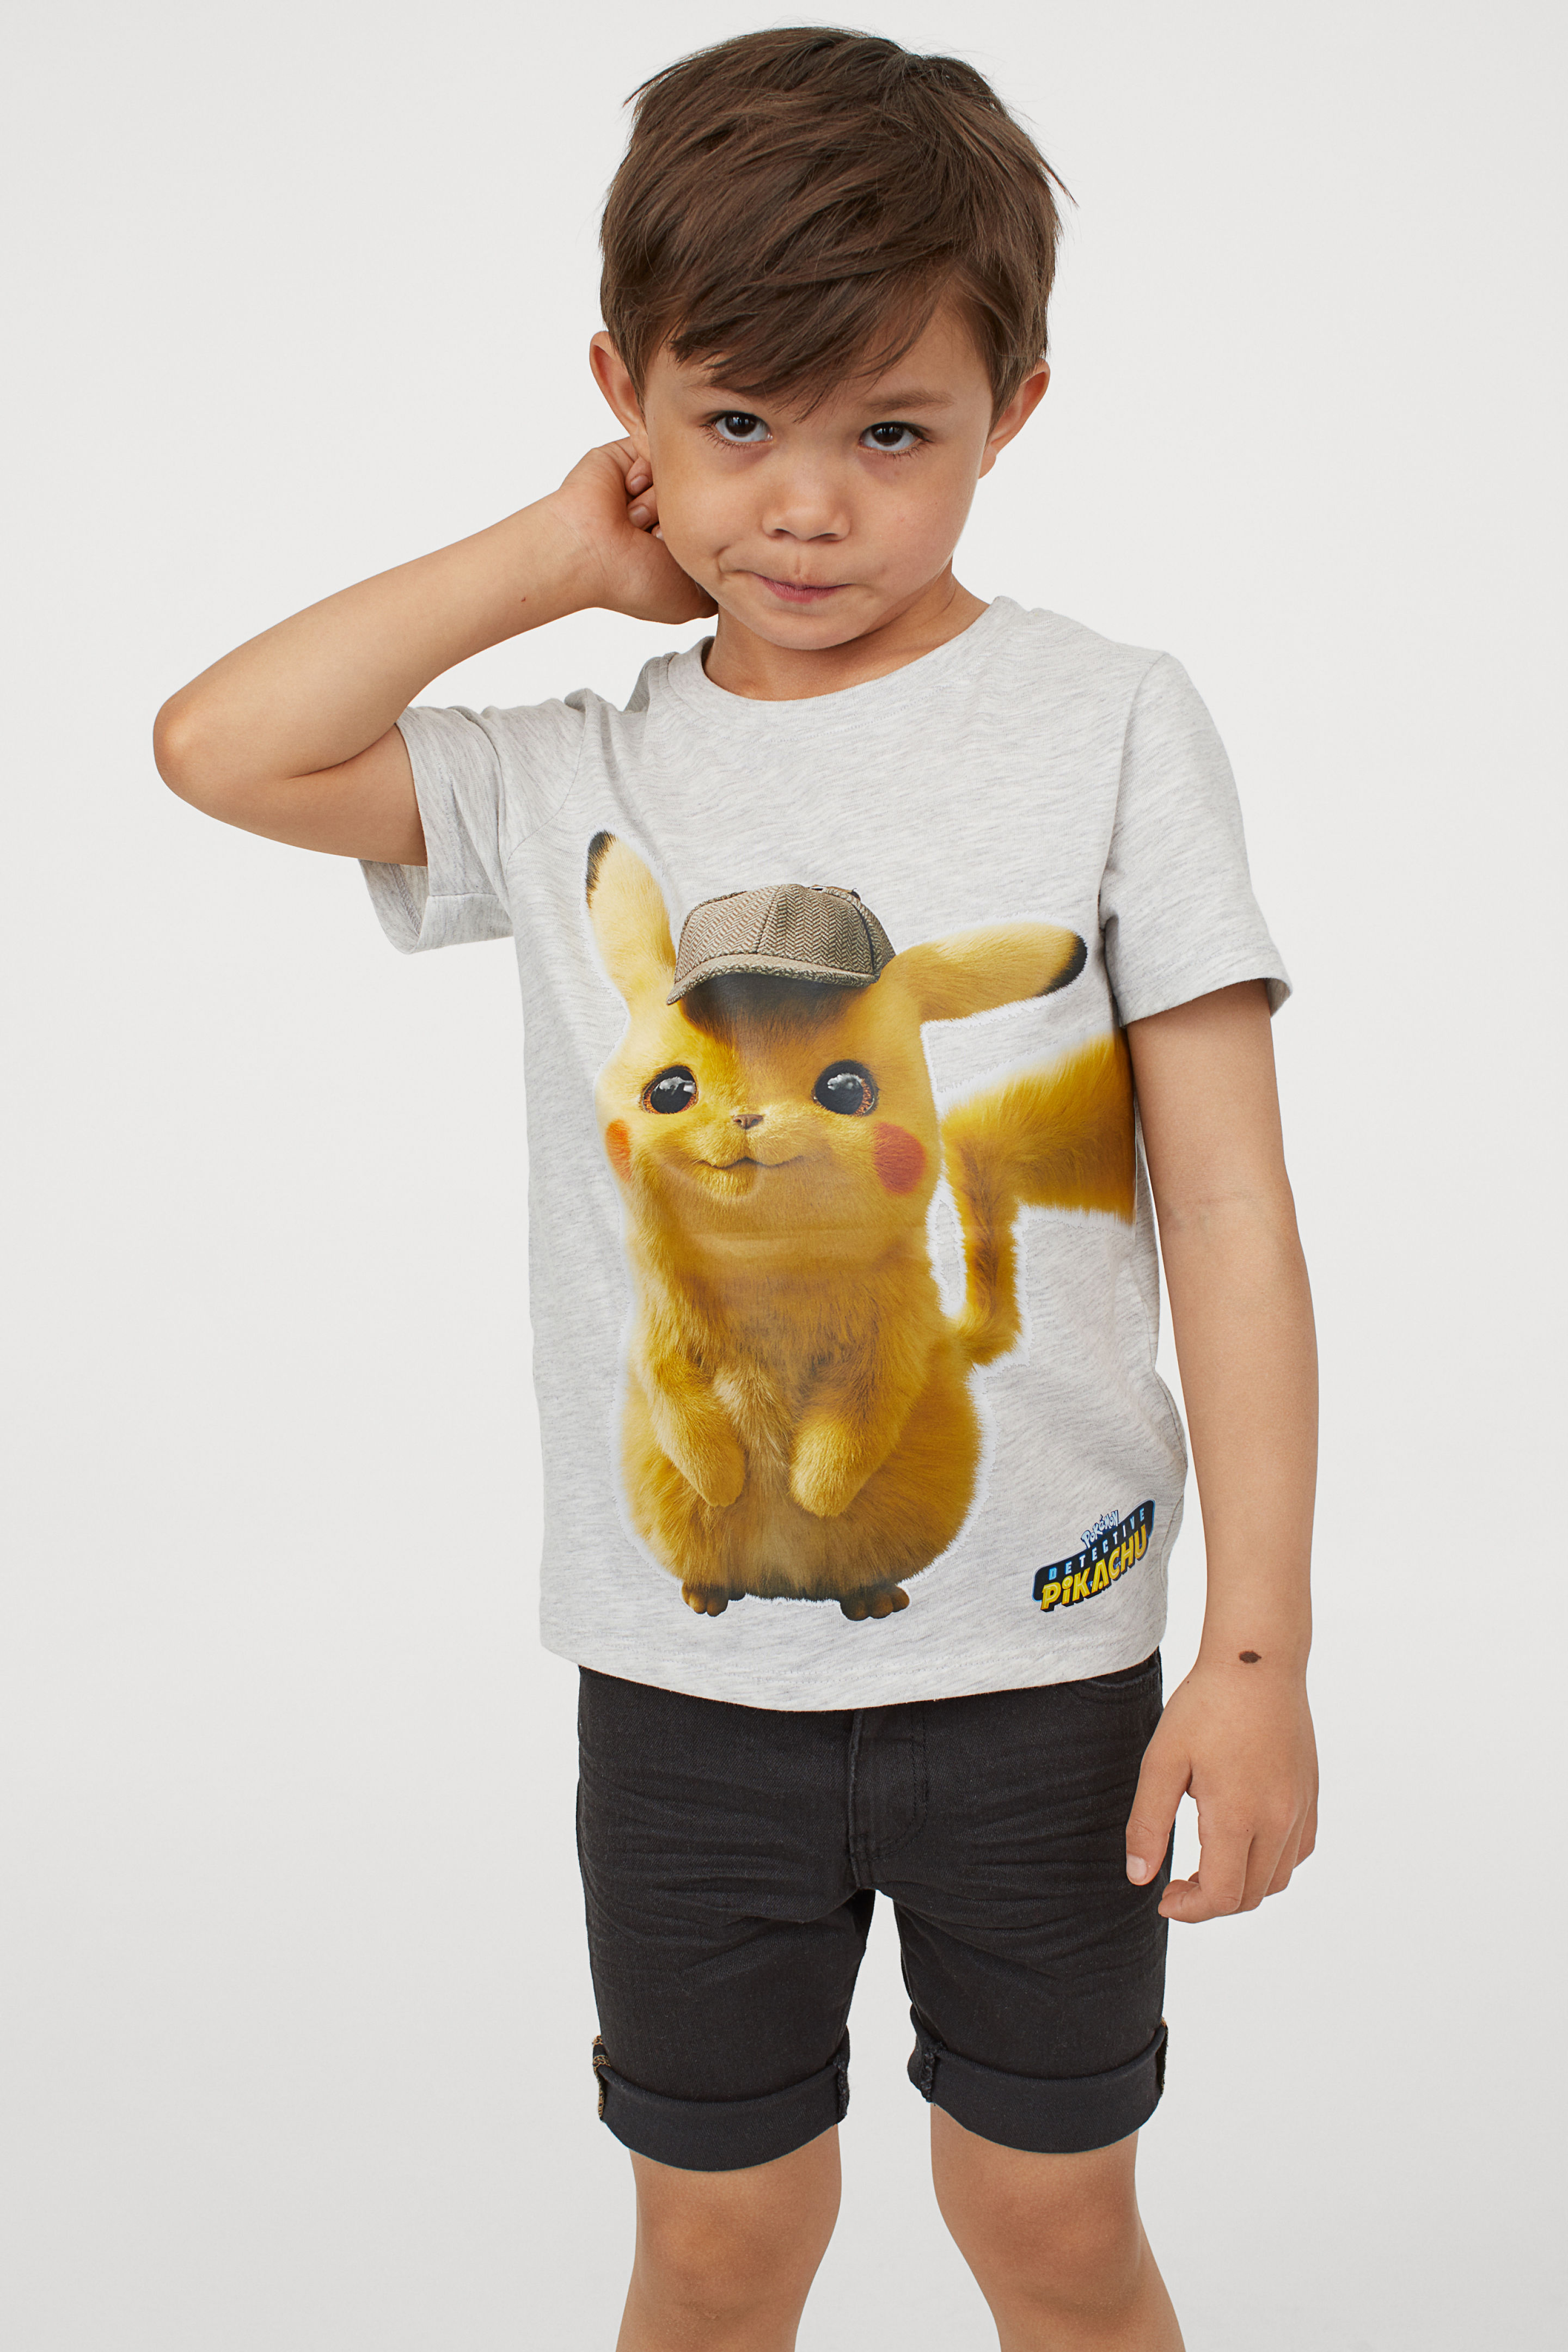 0cc87e35 Detective Pikachu shirts and shorts added to H&M Pokémon collection ...